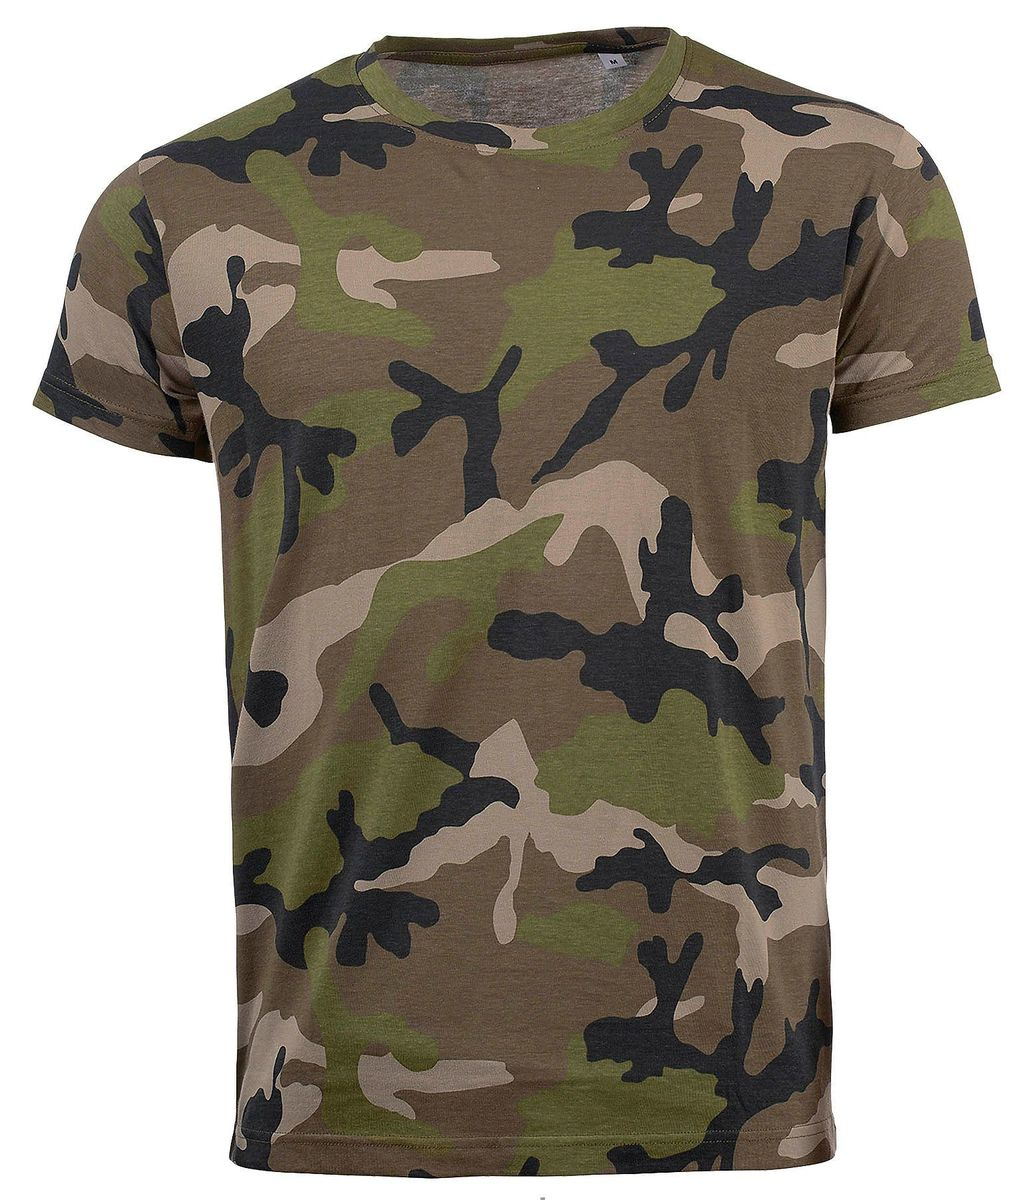 T-shirt manches courtes camouflage HOMME - 01188 - vert army camo